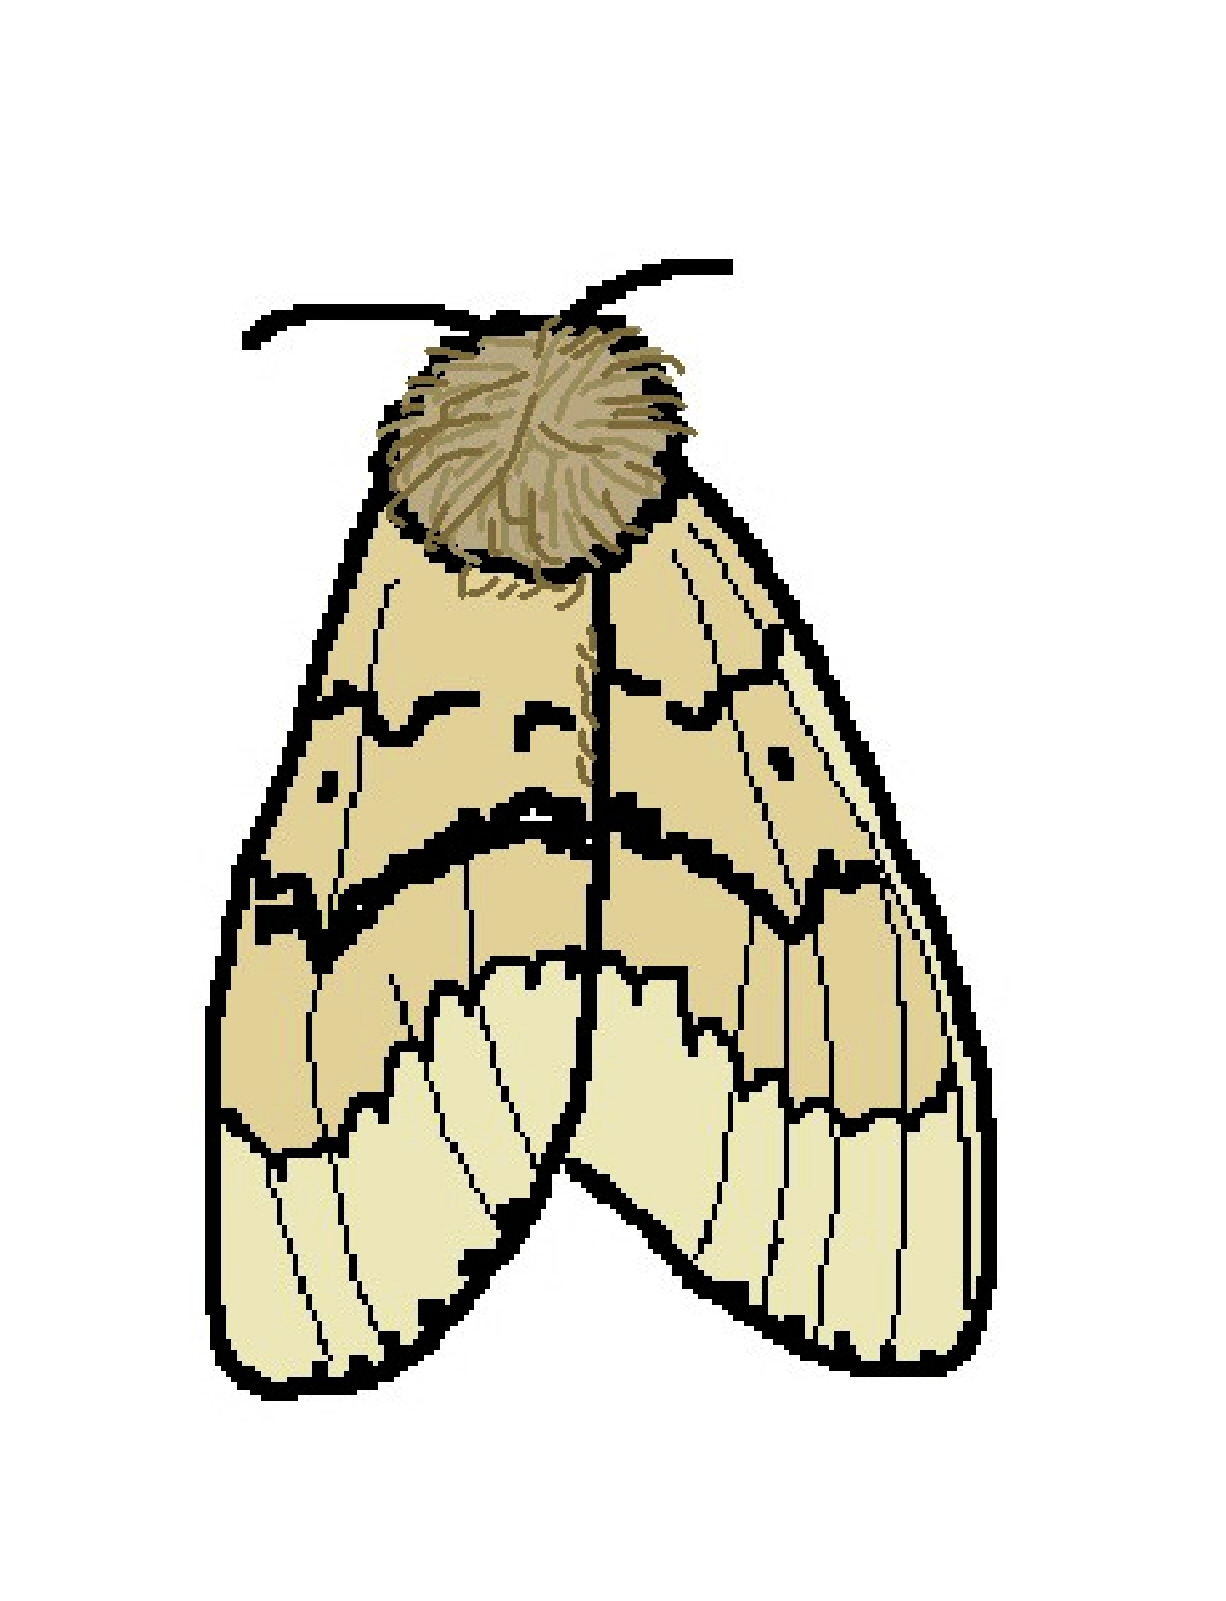 Moth clipart #12, Download drawings